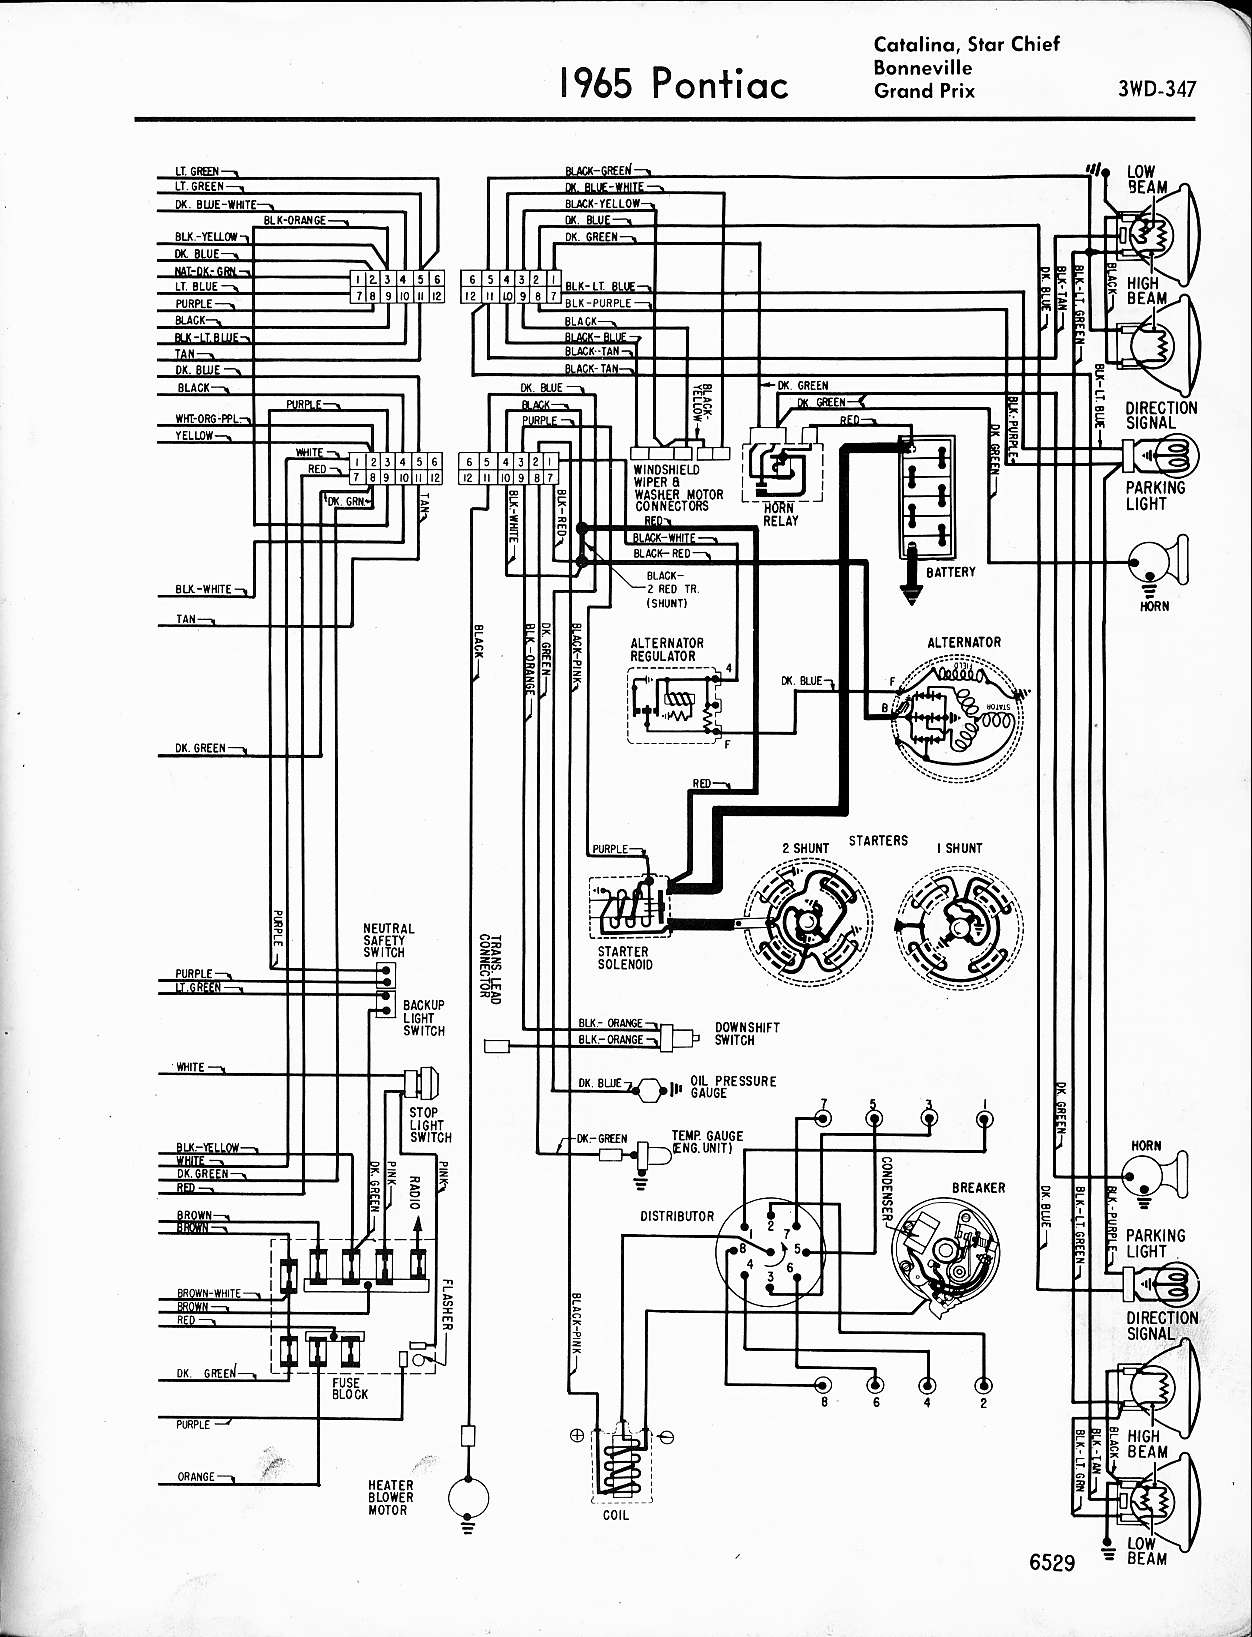 727 Neutral Safety Switch Wiring Diagram also W66NSS as well Chevroletindex additionally Jeep Cj5 Ignition Wiring together with 1967 Mustang Wiring And Vacuum Diagrams. on 1965 mustang neutral safety switch wiring